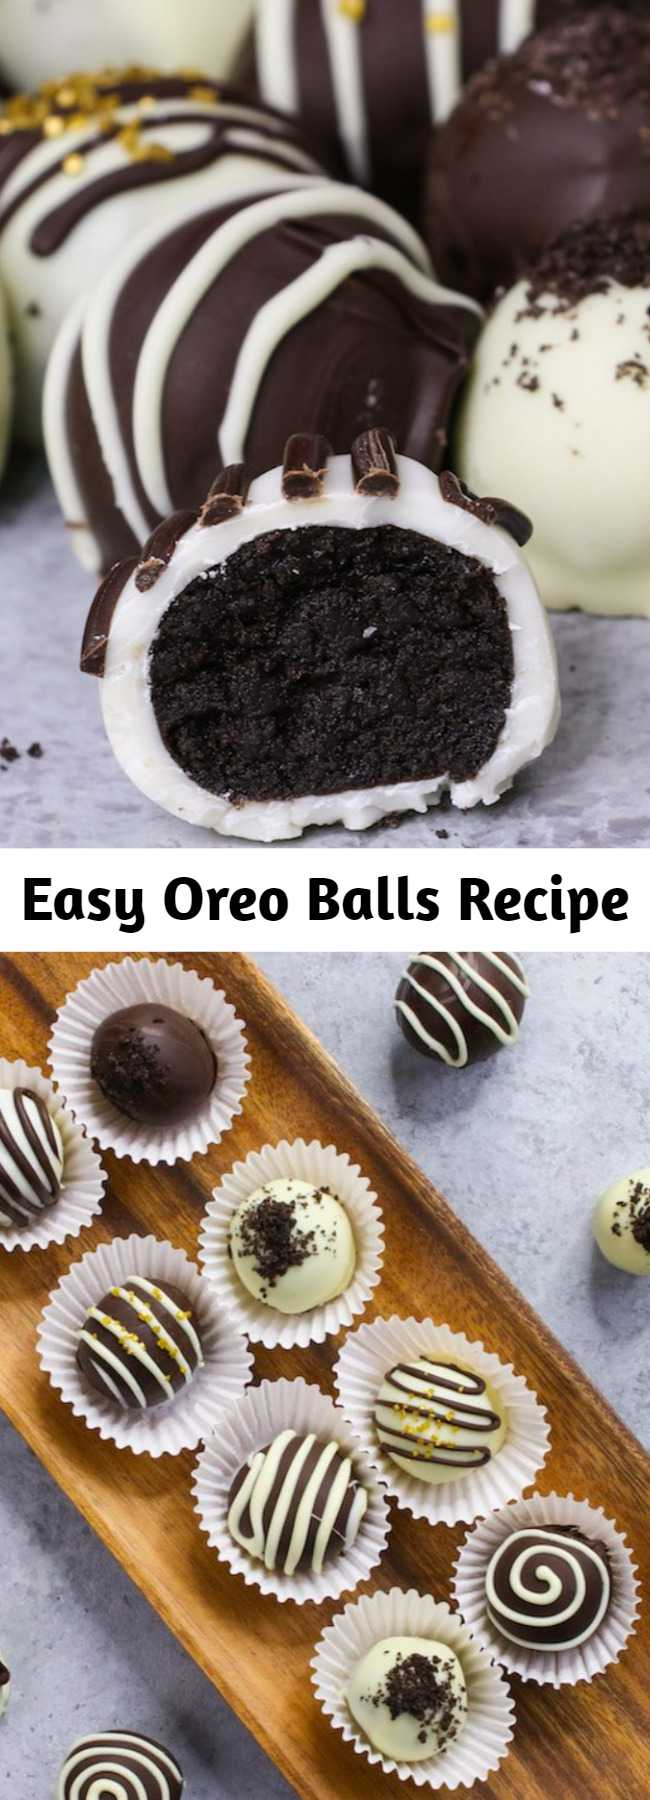 Easy Oreo Balls Recipe - Oreo Balls are made with crushed Oreo cookies mixed with cream cheese and covered with melted chocolate. These sweet treats melt in your mouth with delicious chocolatey Oreo flavors. You can make this recipe for a Christmas party or any other occasion using just 3 ingredients! So Good! Quick and easy recipe, party desserts. No Bake. Vegetarian.